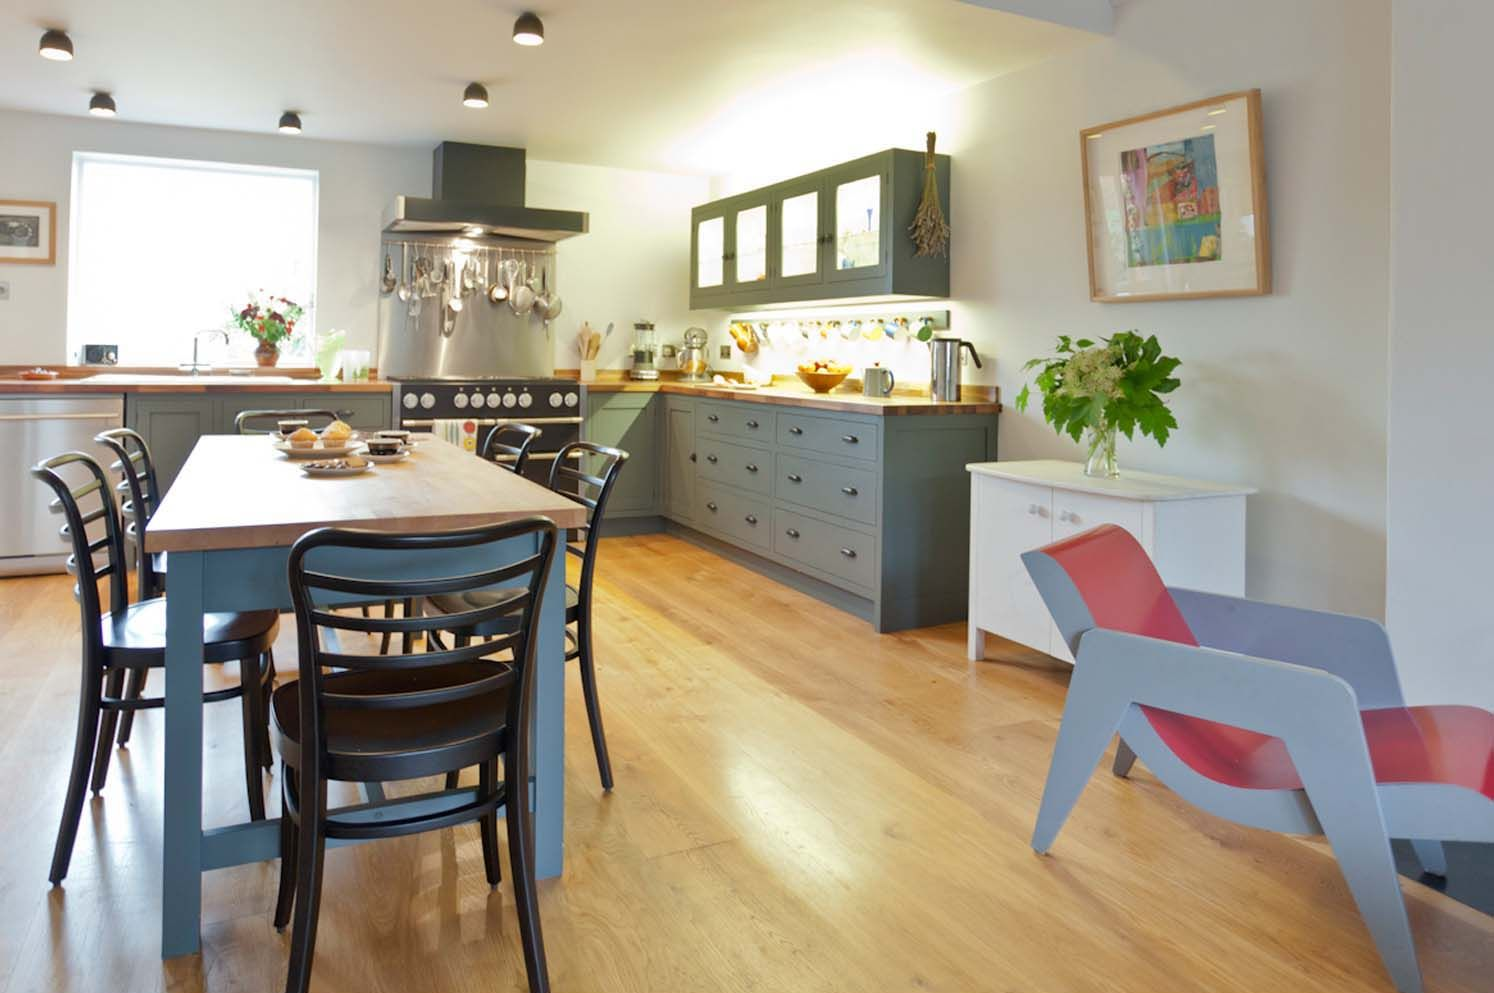 Prime Oak Flooring — post Bespoke kitchens, Engineered